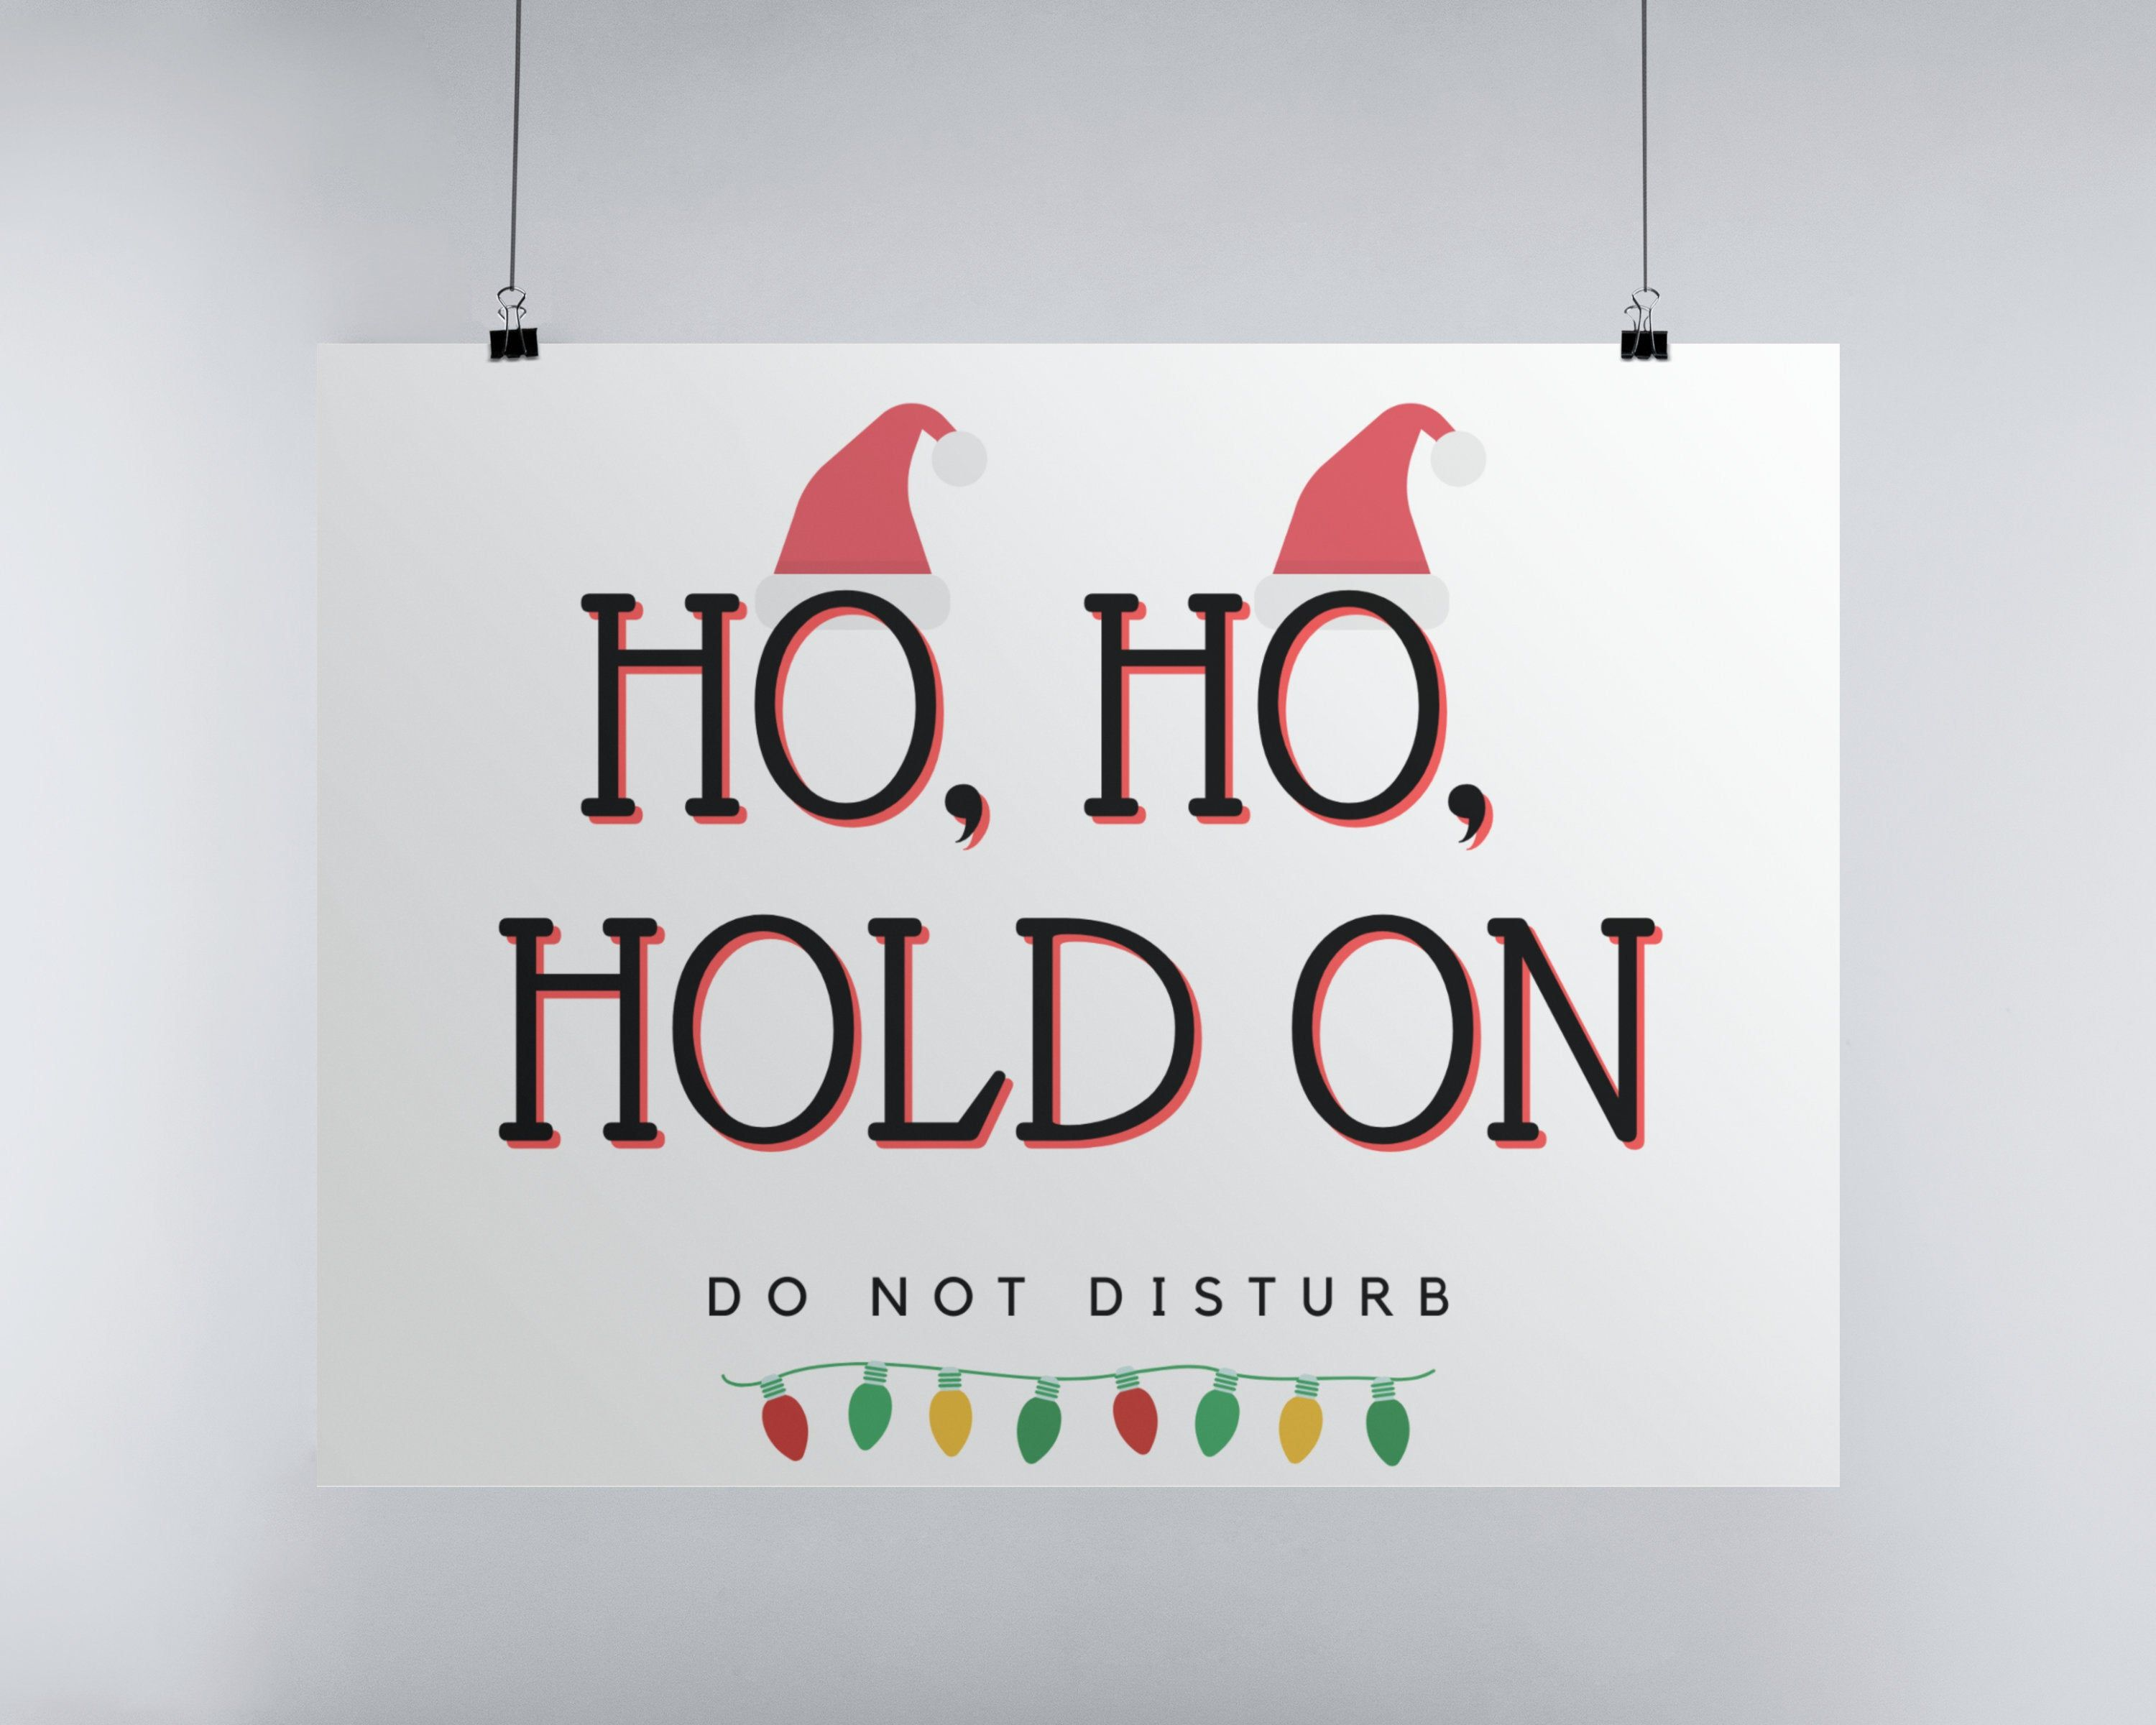 Printable Signs For Office Closed For Christmas 2020 Christmas Door Sign Do Not Disturb Sign Christmas Office   Etsy in